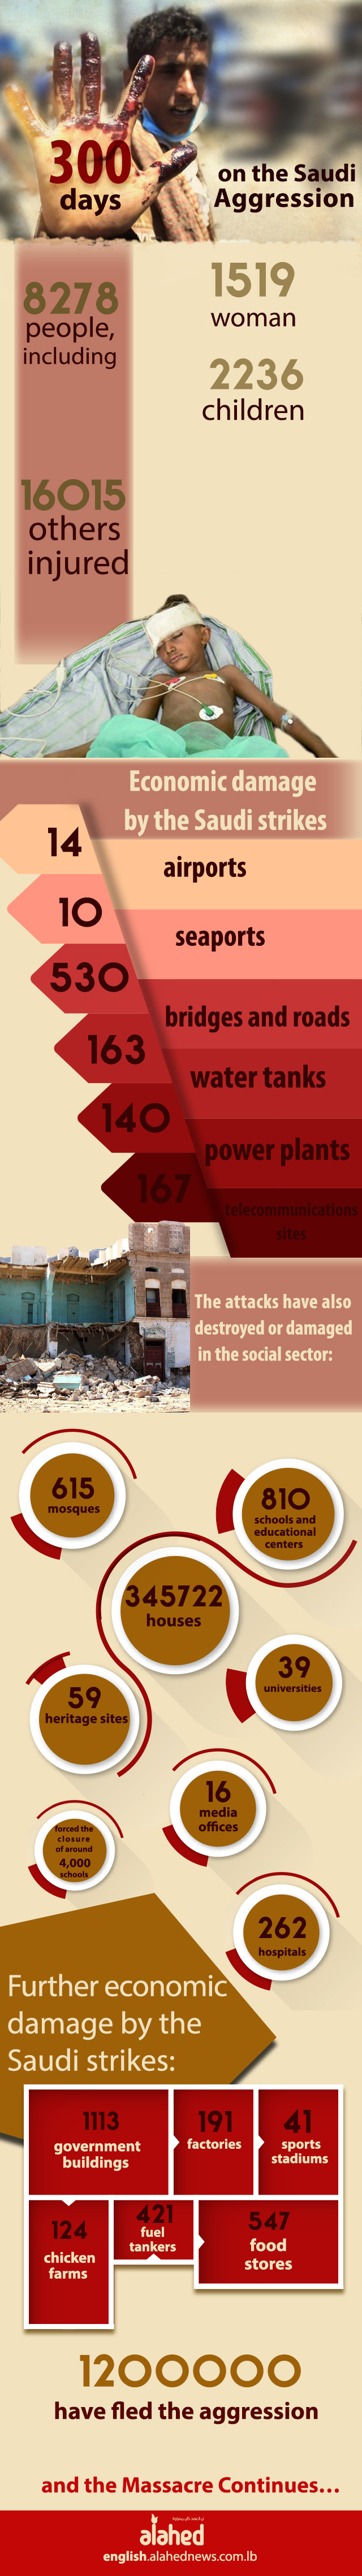 300 Days on the Saudi Aggression on Yemen [Info-graphics]